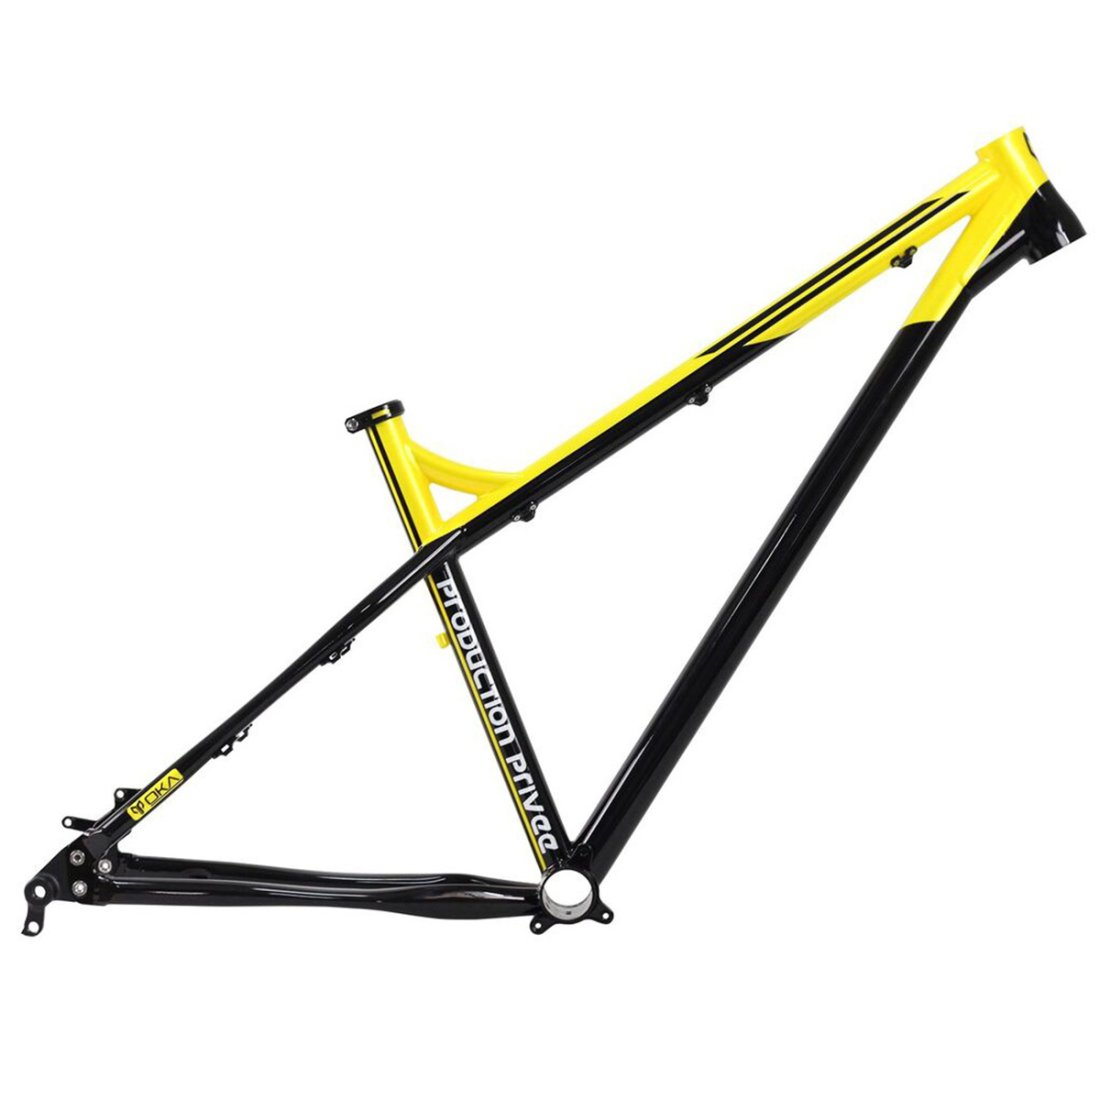 Fahrradrahmen PRODUCTION PRIVEE Oka Yellow Limited Edition 27.5 ...